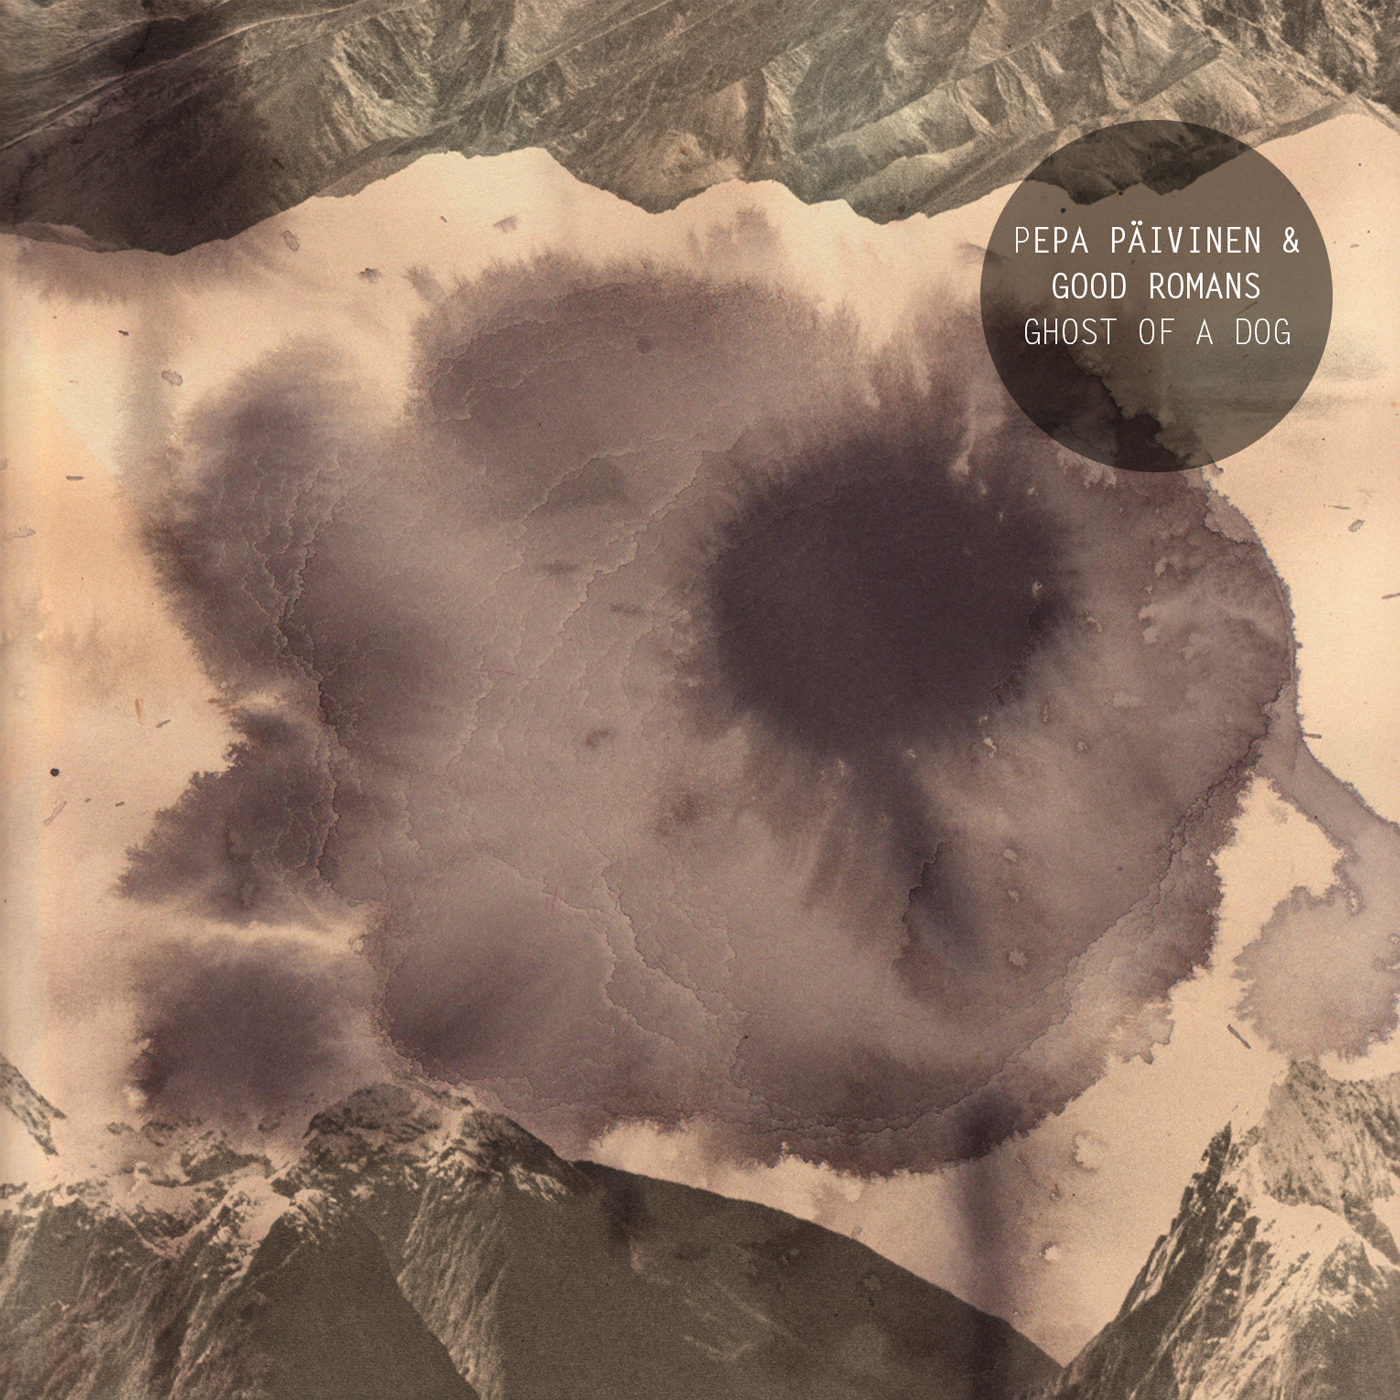 Pepa Päivinen & Good Romance: Ghost Of A Dog